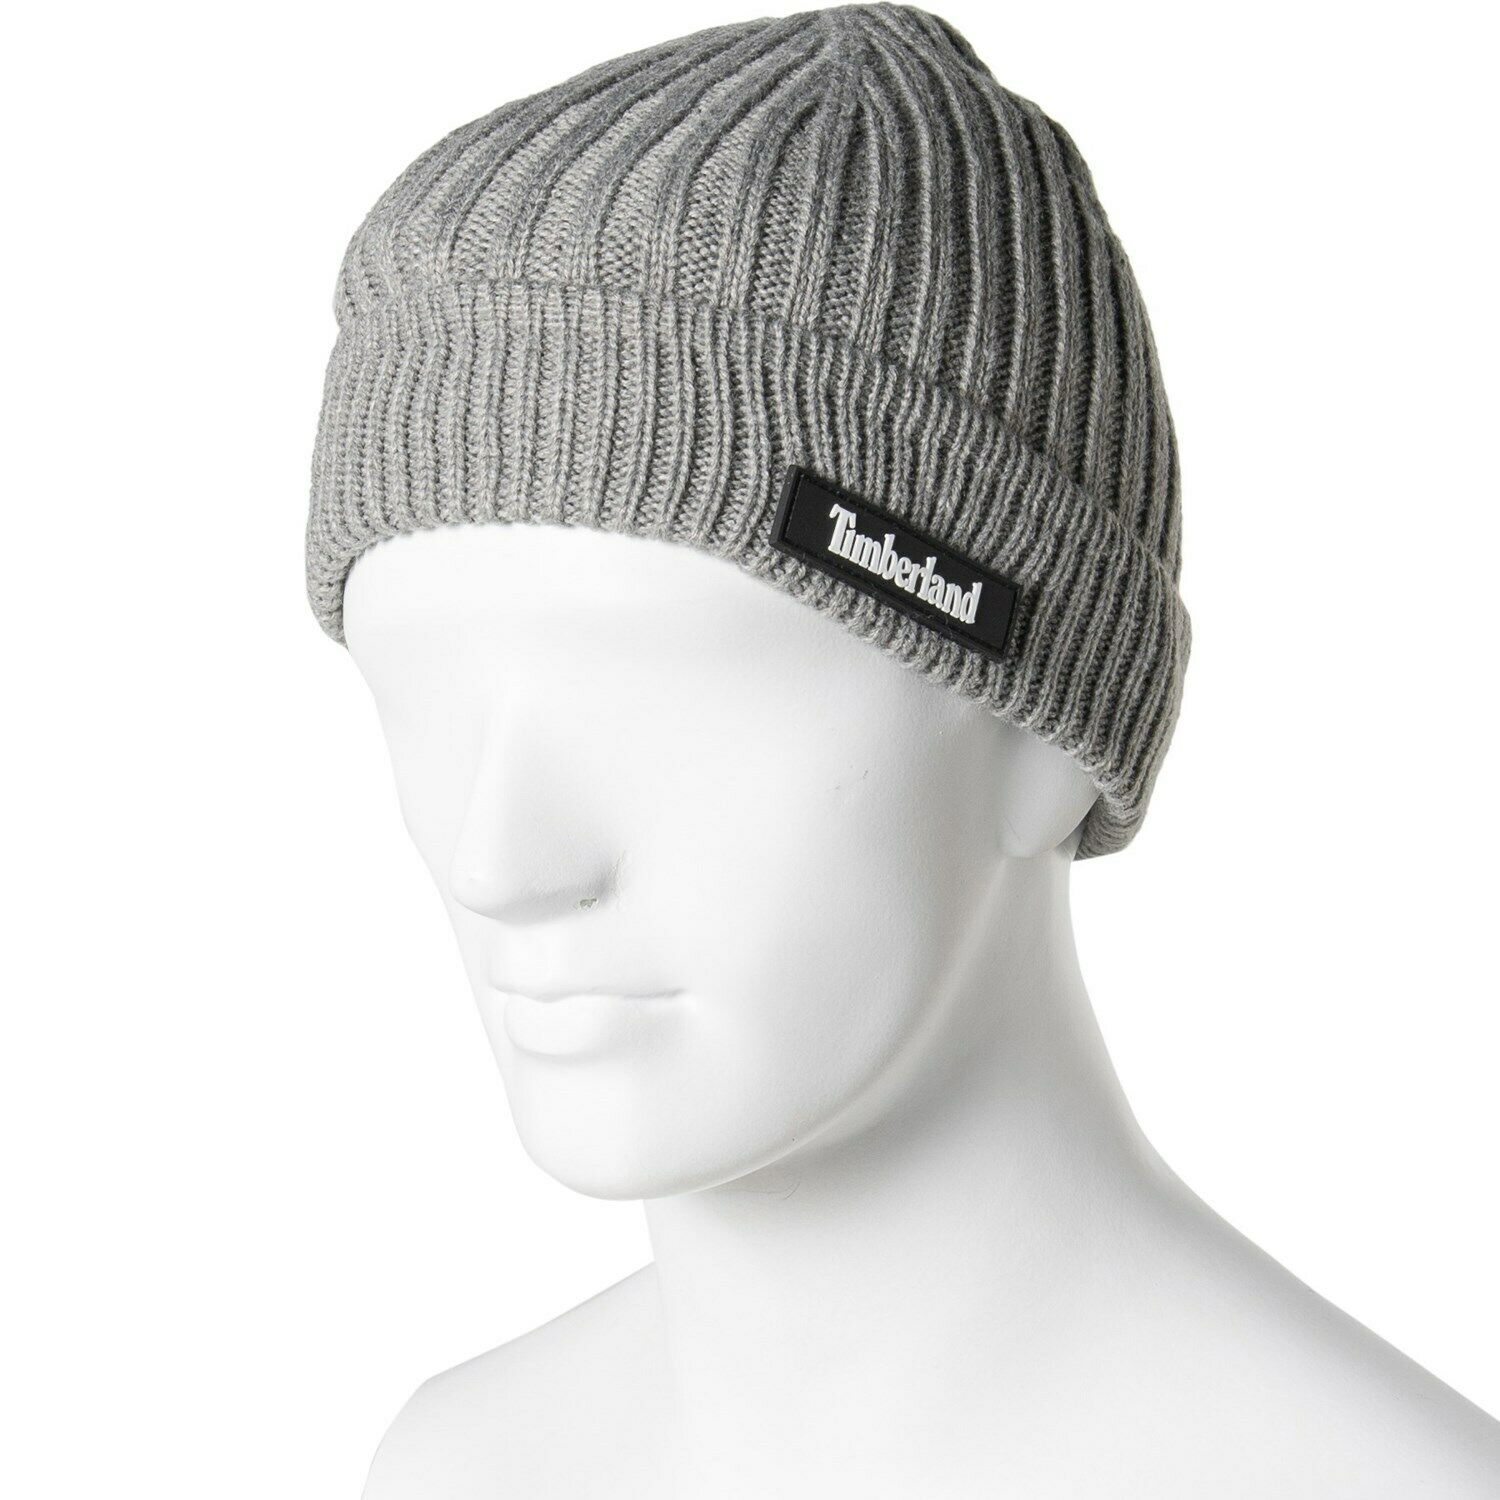 Light gray Timberland beanie with a script tag on the side